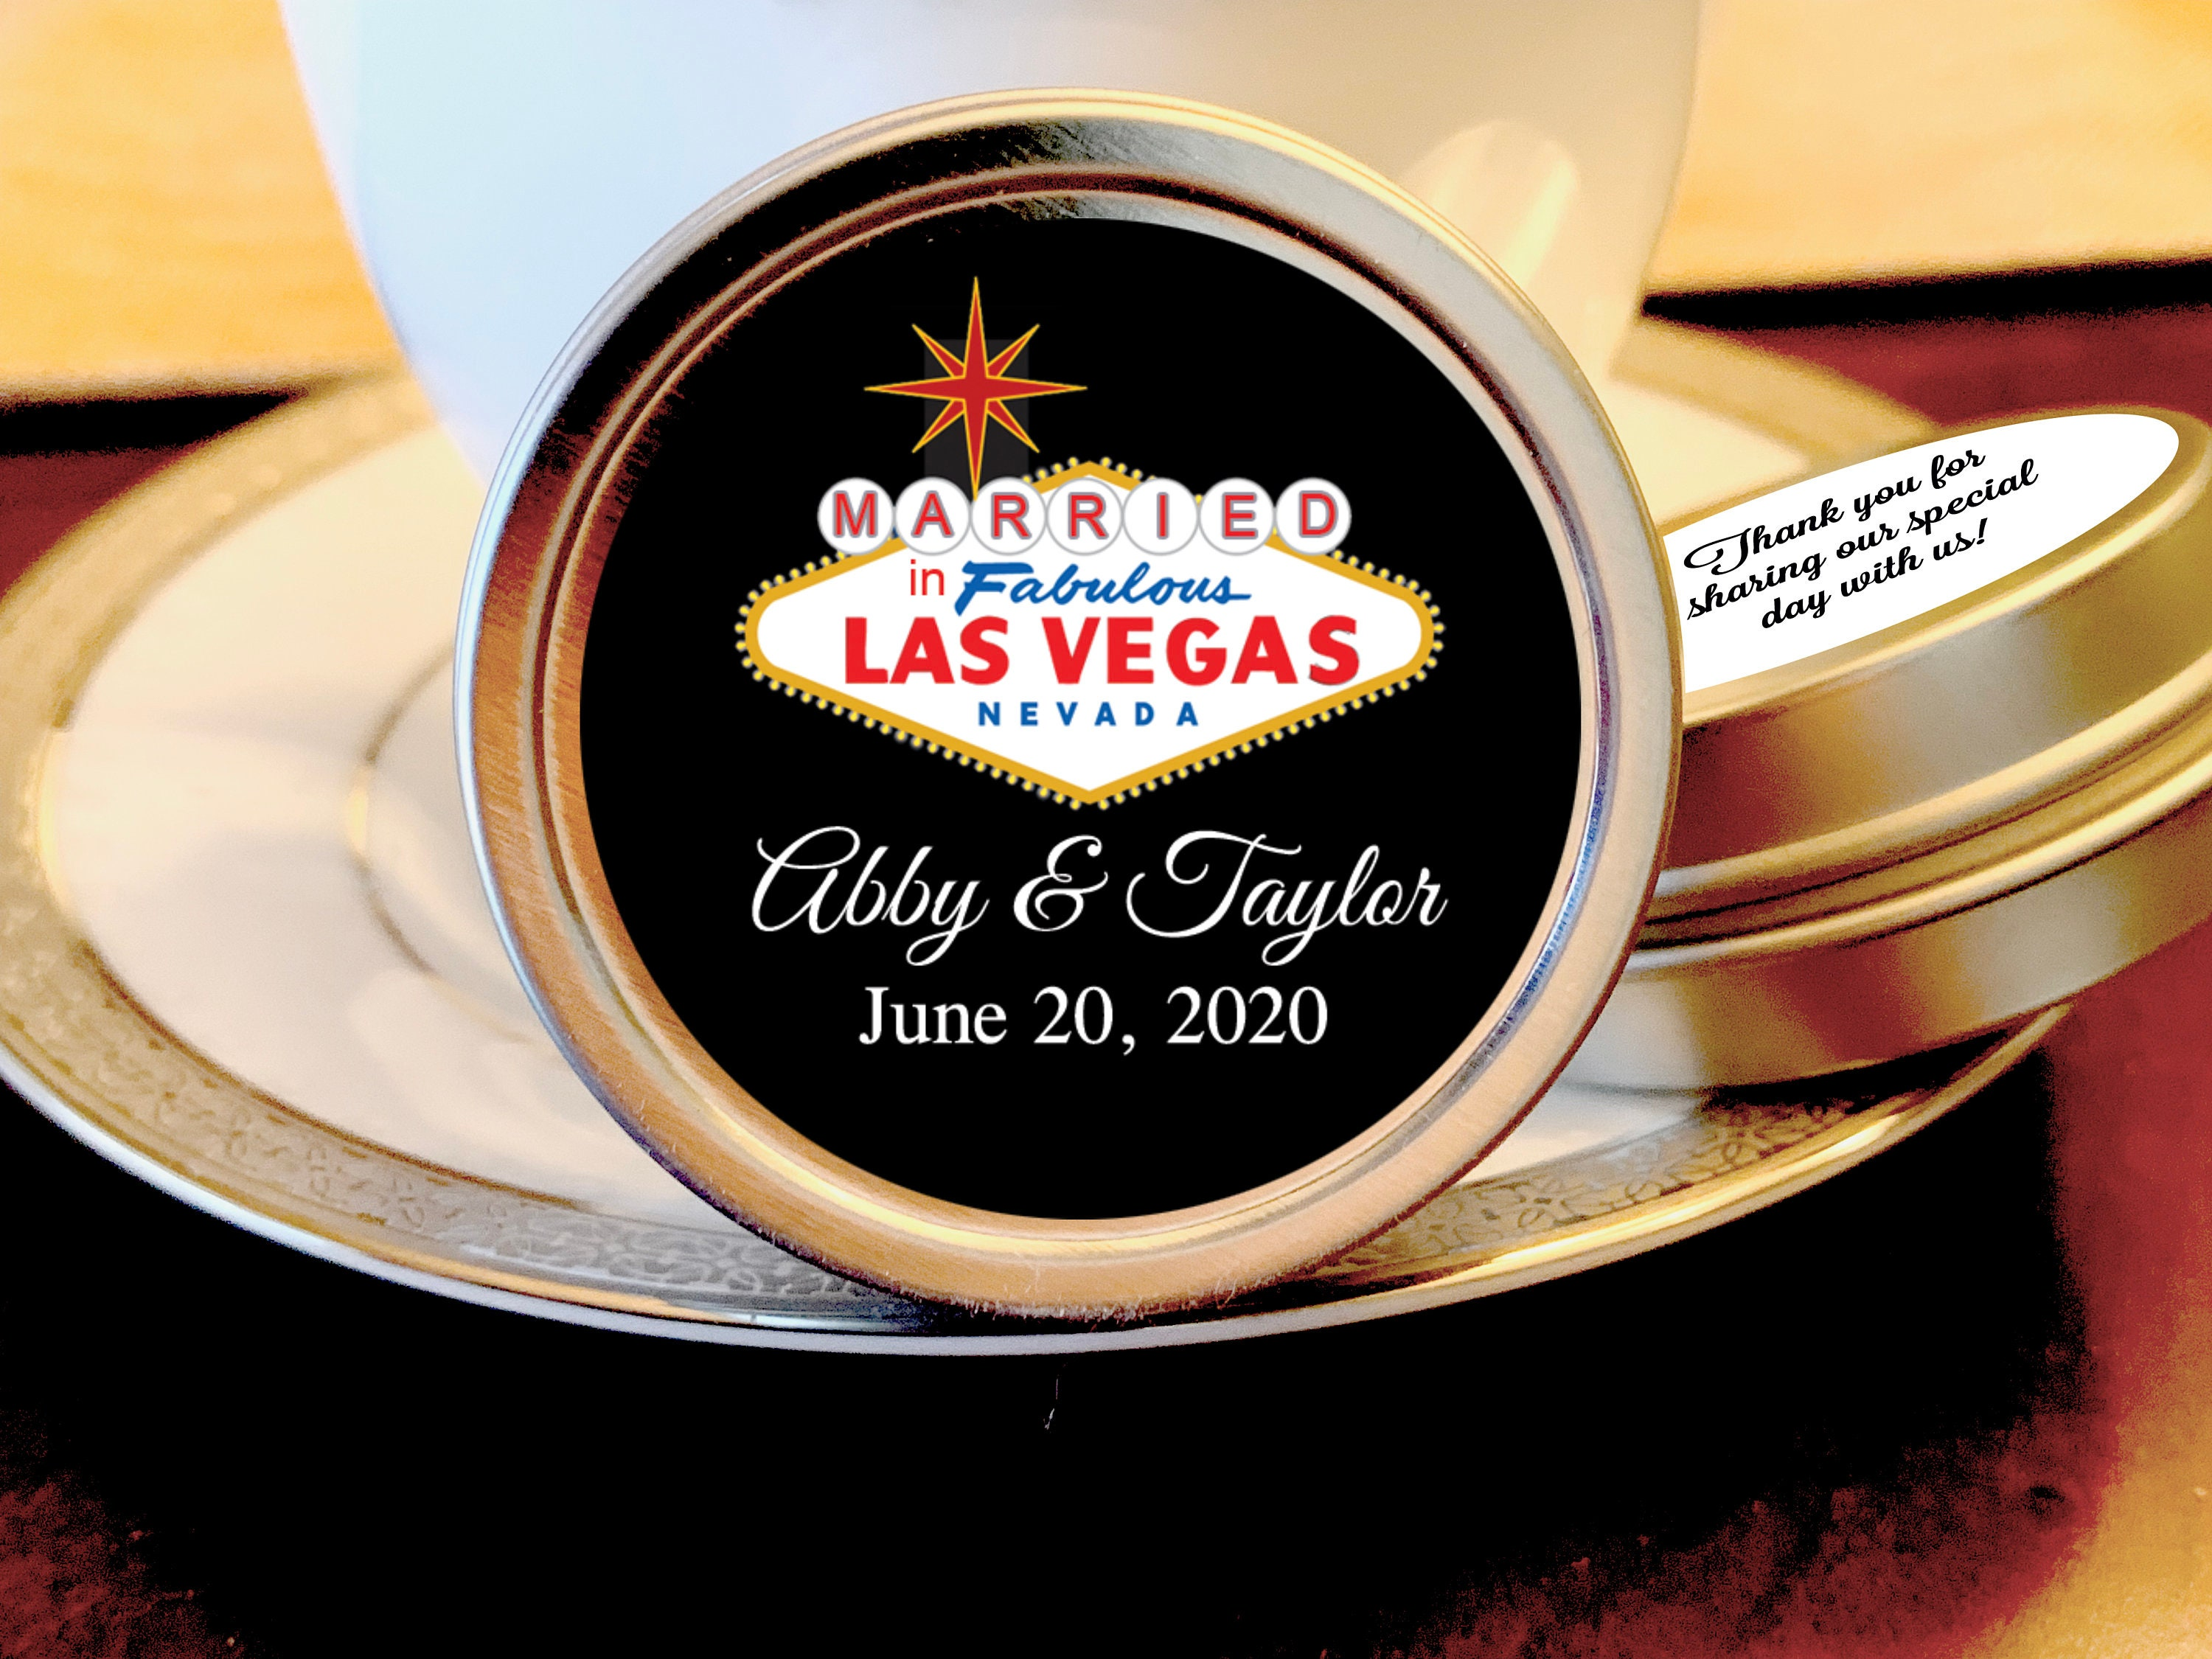 Married in las vegas stickers custom labels wedding labels las vegas wedding decor thank you stickers custom color stickers